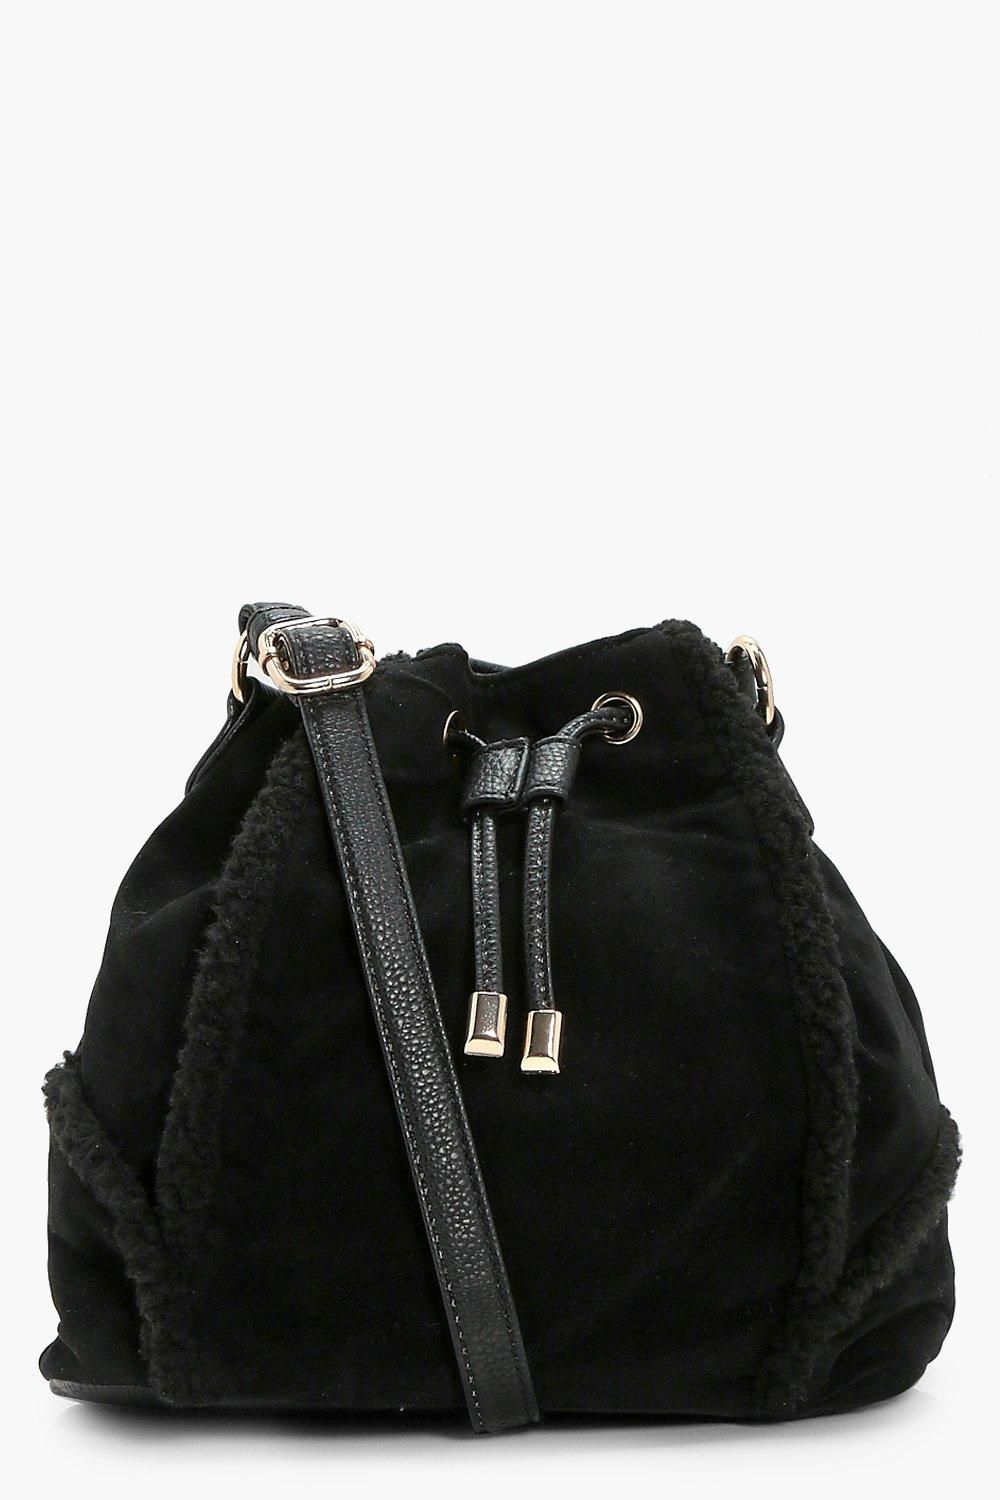 Shearling Trim Duffle Bag - black - Sophie Shearli